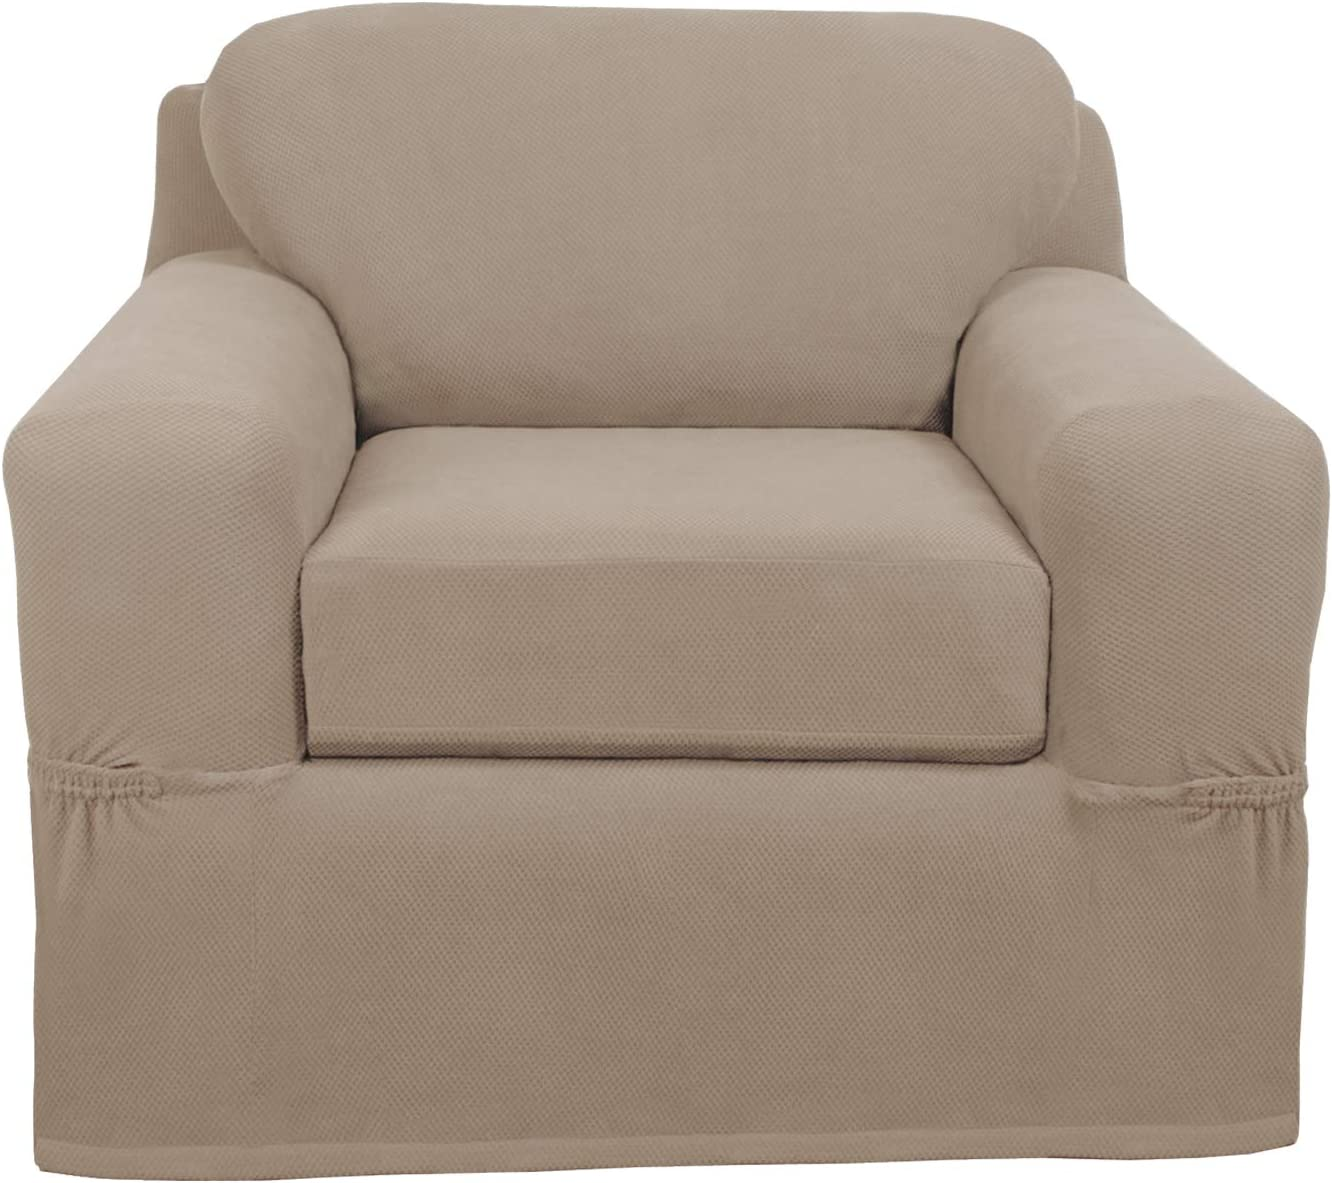 MAYTEX Pixel Ultra Soft Stretch 2 Piece Arm Furniture Cover, Sand Chair Slipcover